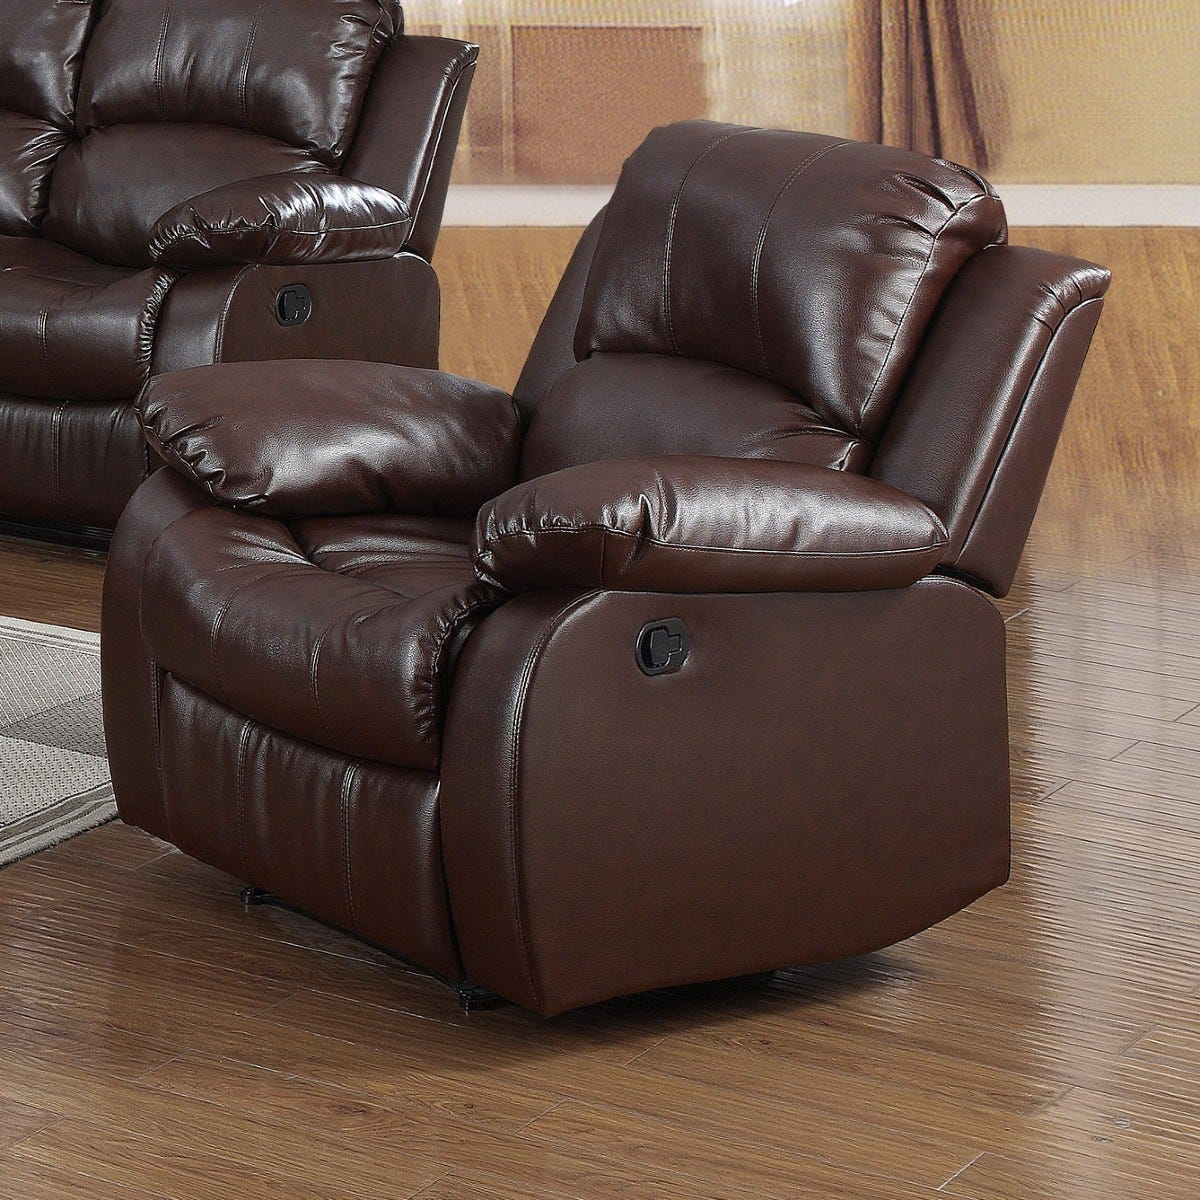 Calne Faux Leather Reclining Armchair Brown